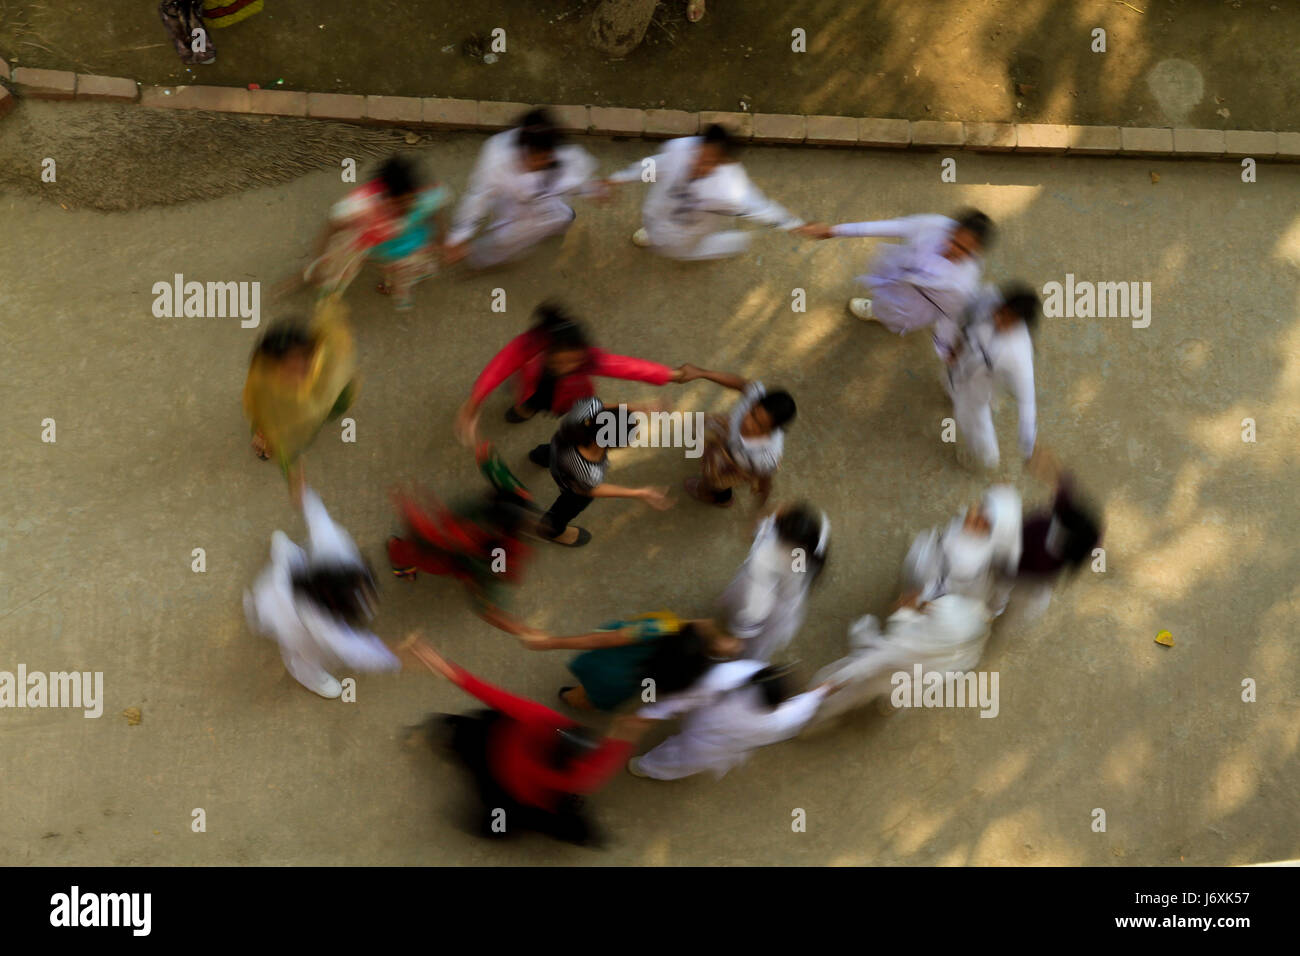 Jubilant students of Monipur School after publication of Primary Terminal Examinations (PTE) results. Dhaka, Bangladesh - Stock Image